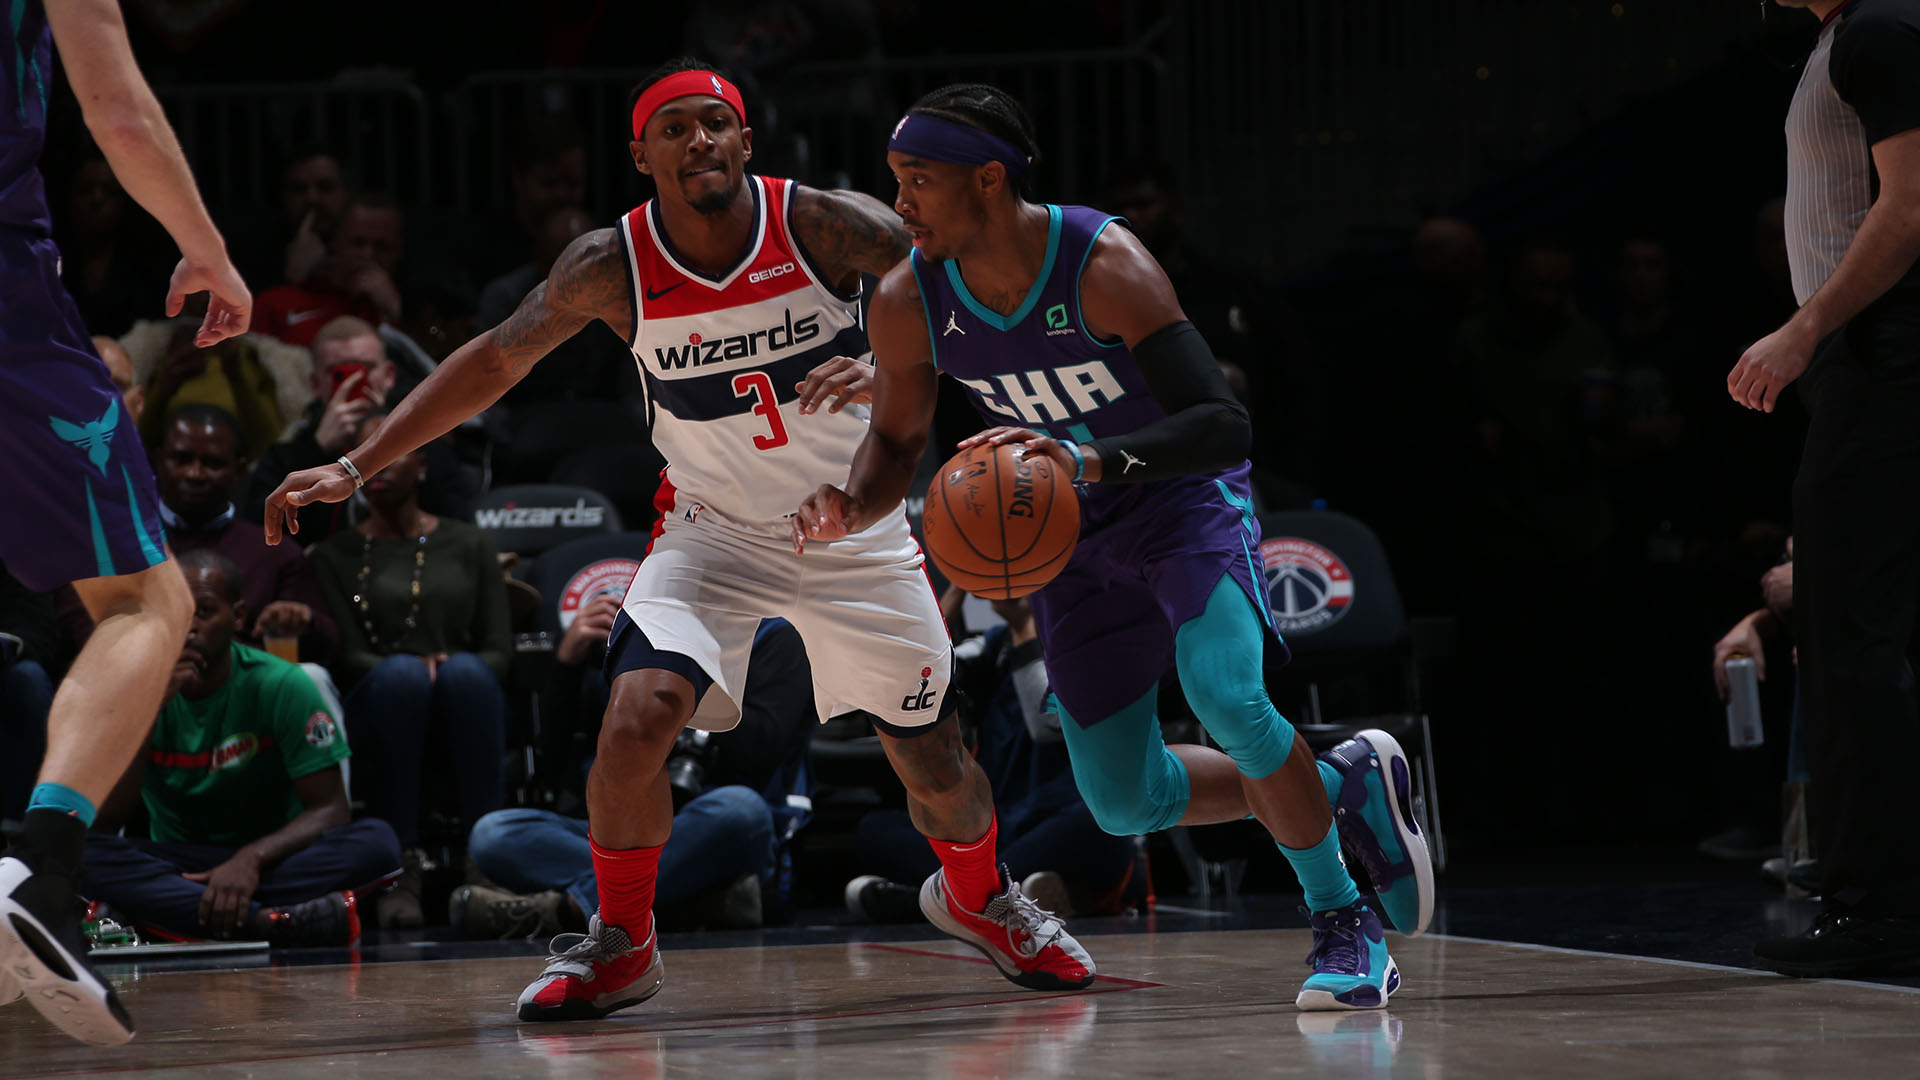 Hornets @ Wizards